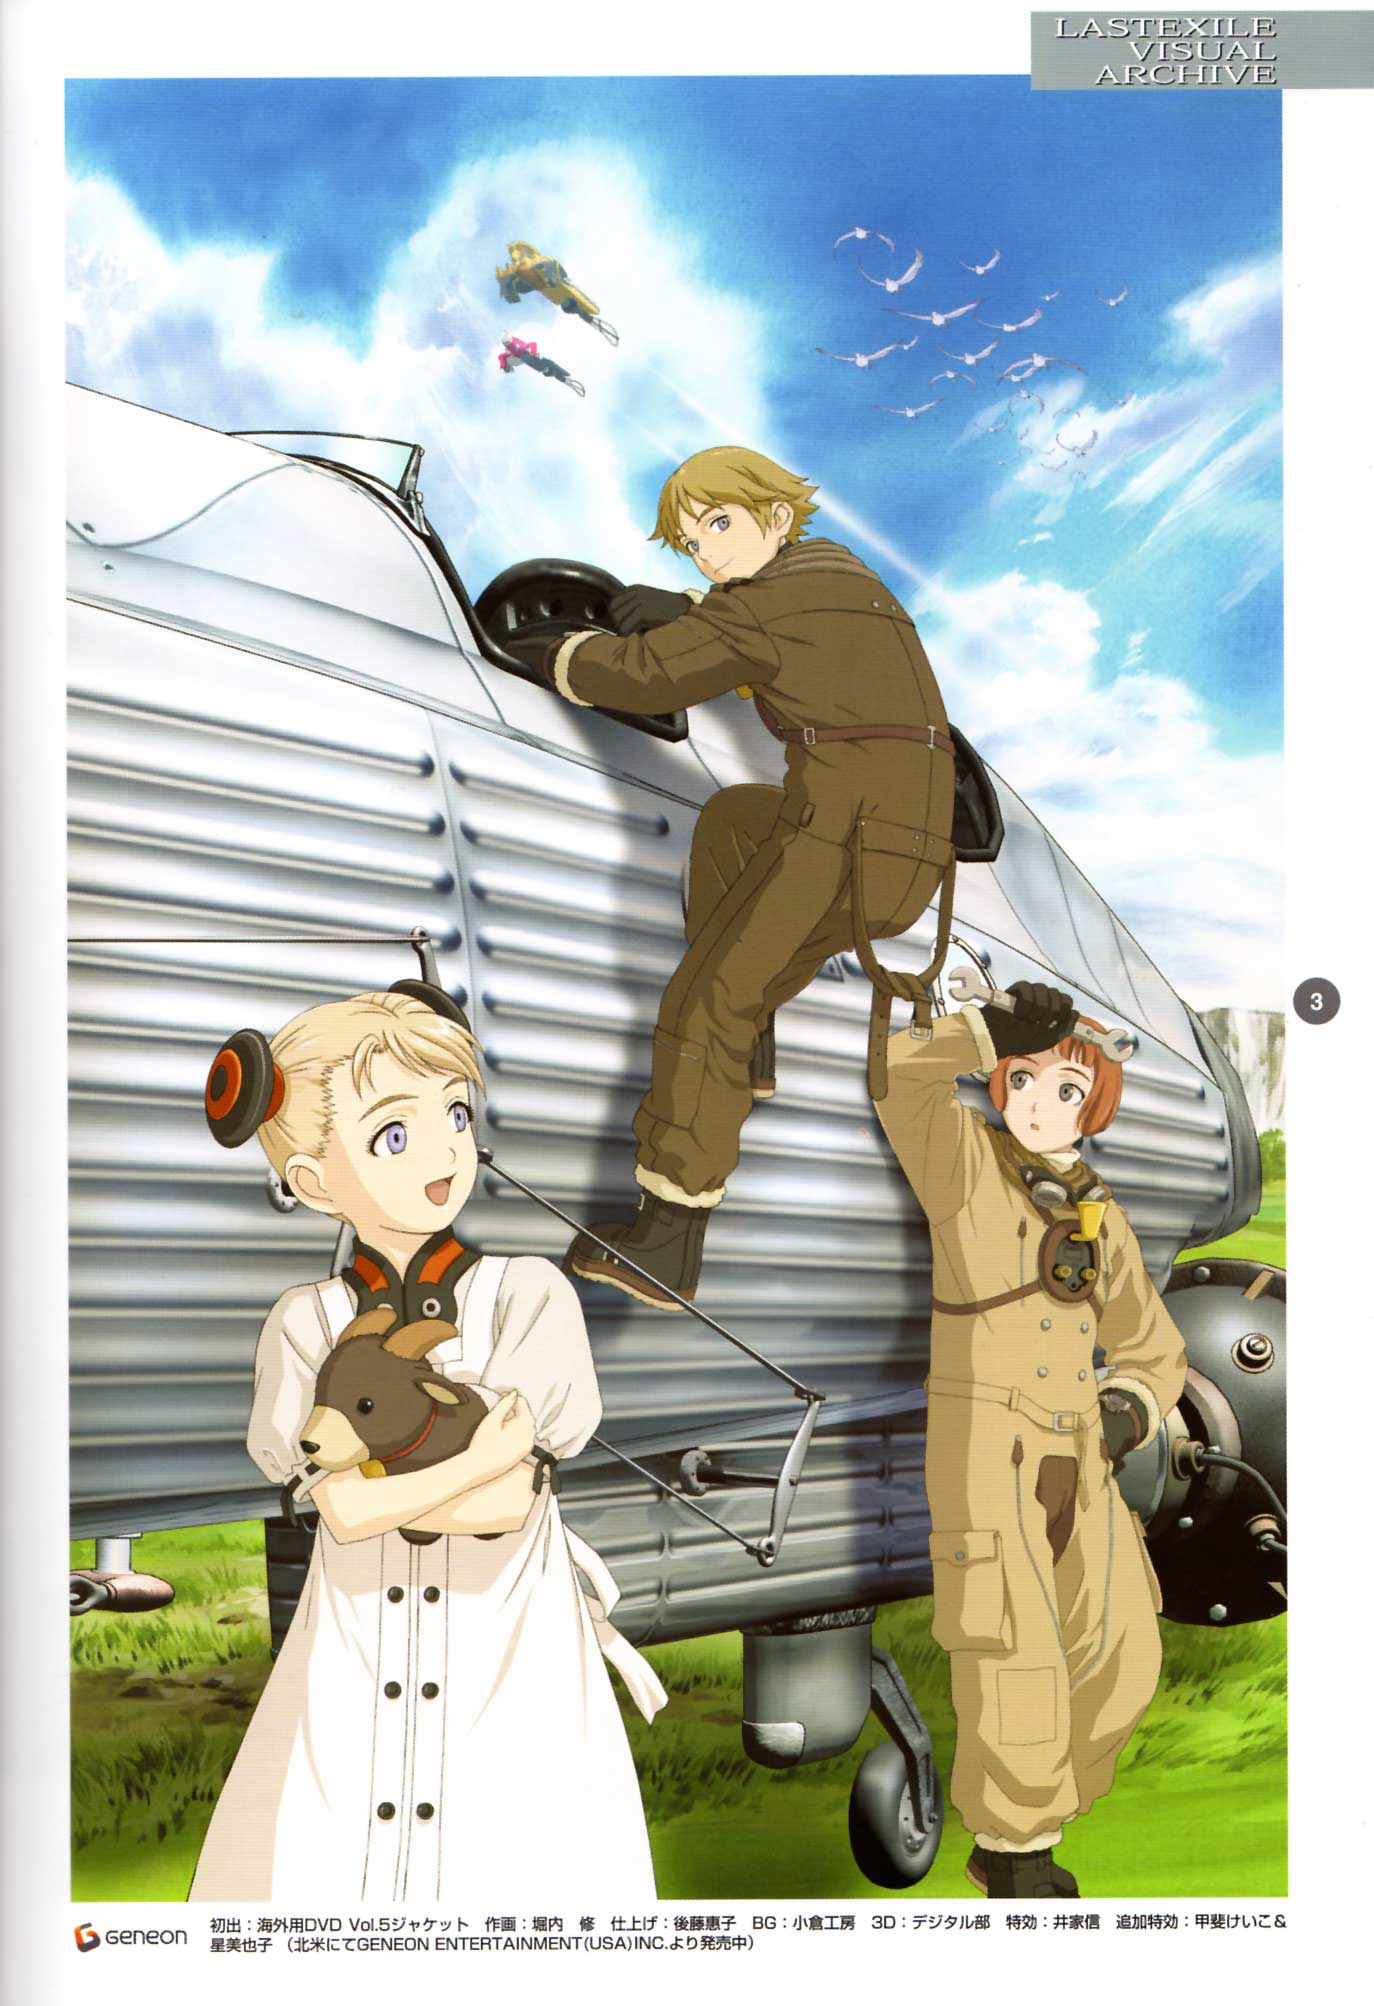 Last Exile - Aerial Log - (2005 - Art Book) Page 3